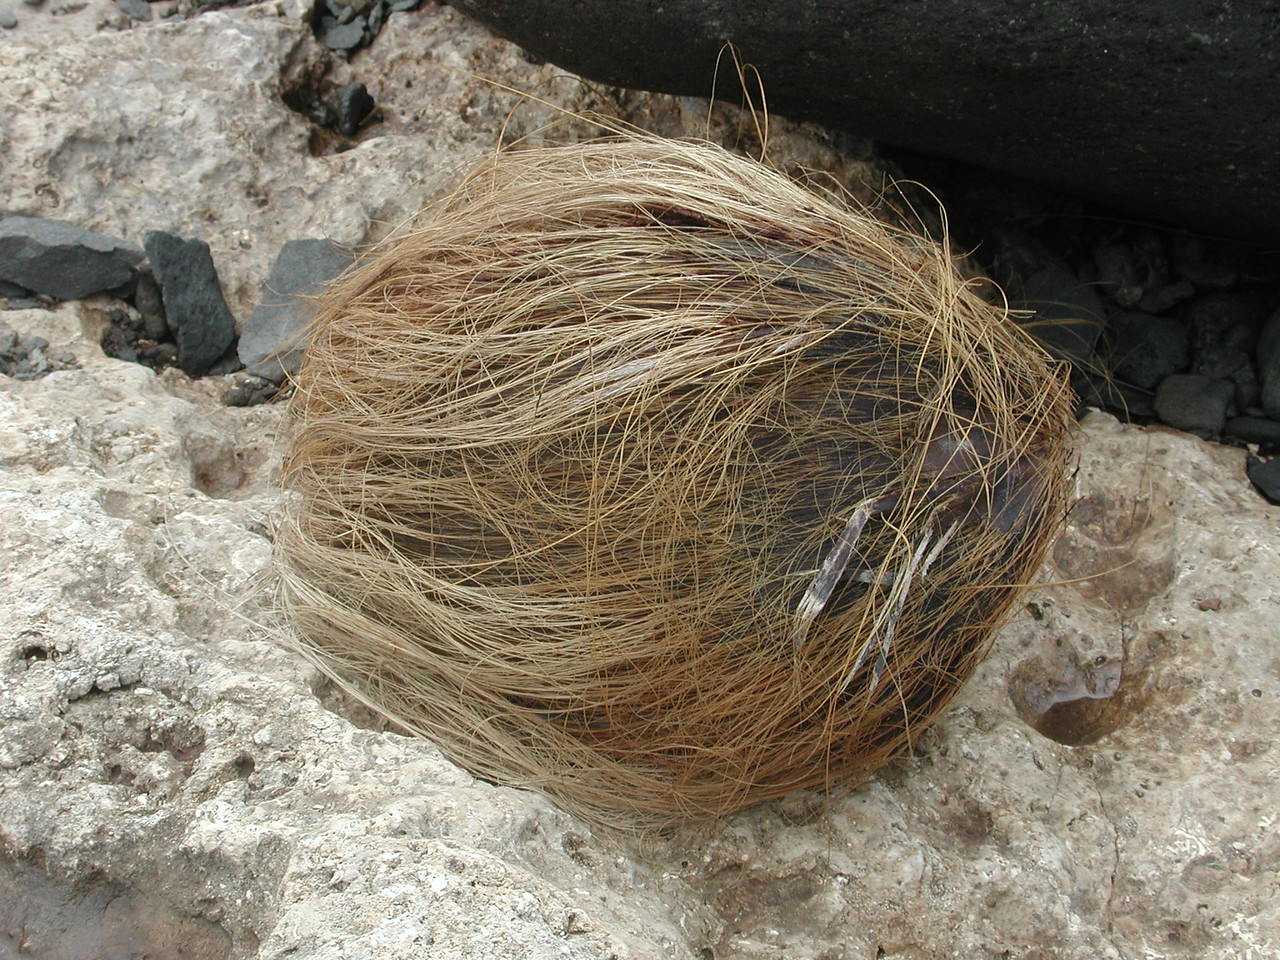 Coconut, Cocos nucifera, a nonnative palm of Hawaii.